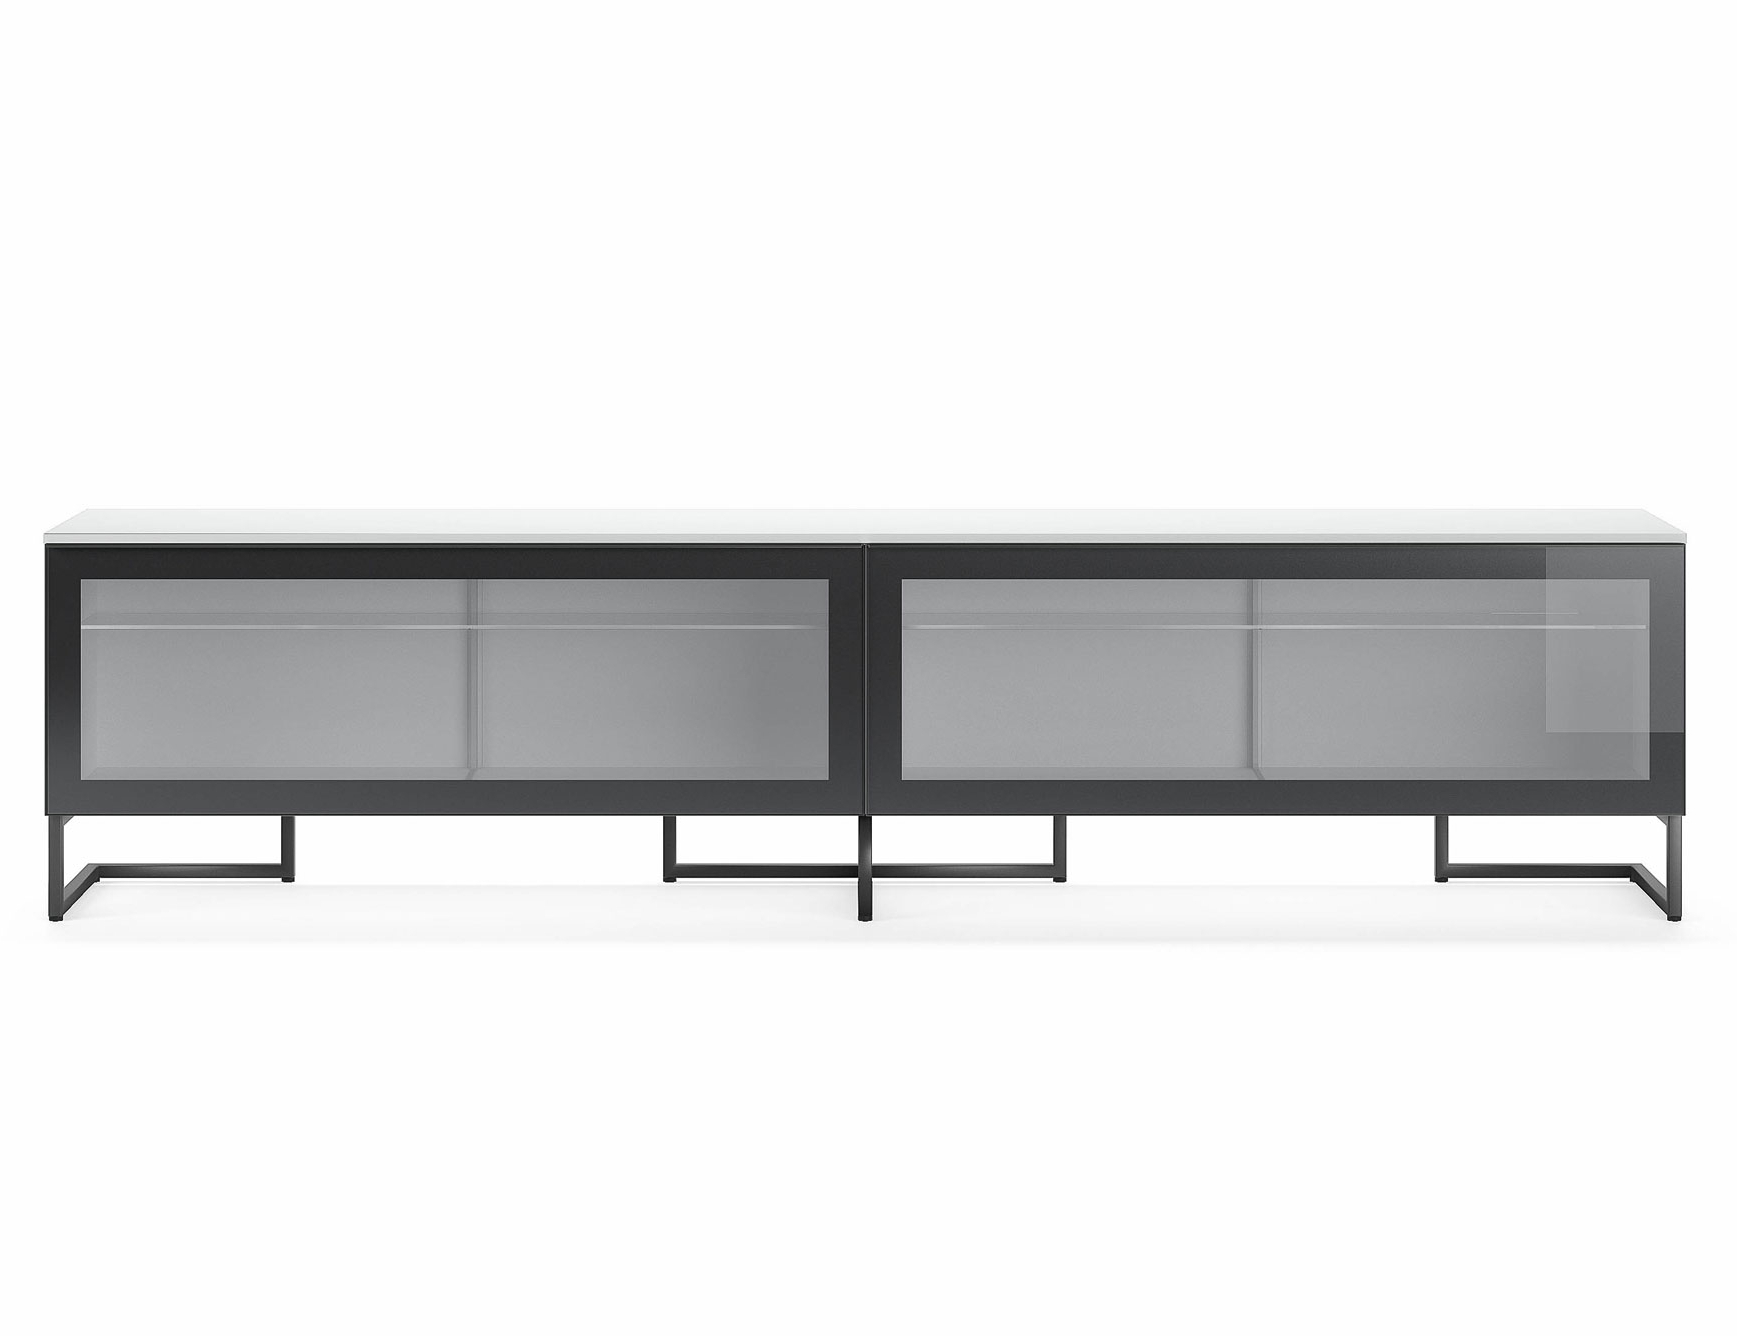 Nella Vetrina Pianca Spazio Sgm240 Contemporary Italian Tv Unit In Throughout Well Known Black Burnt Oak Sideboards (View 11 of 20)